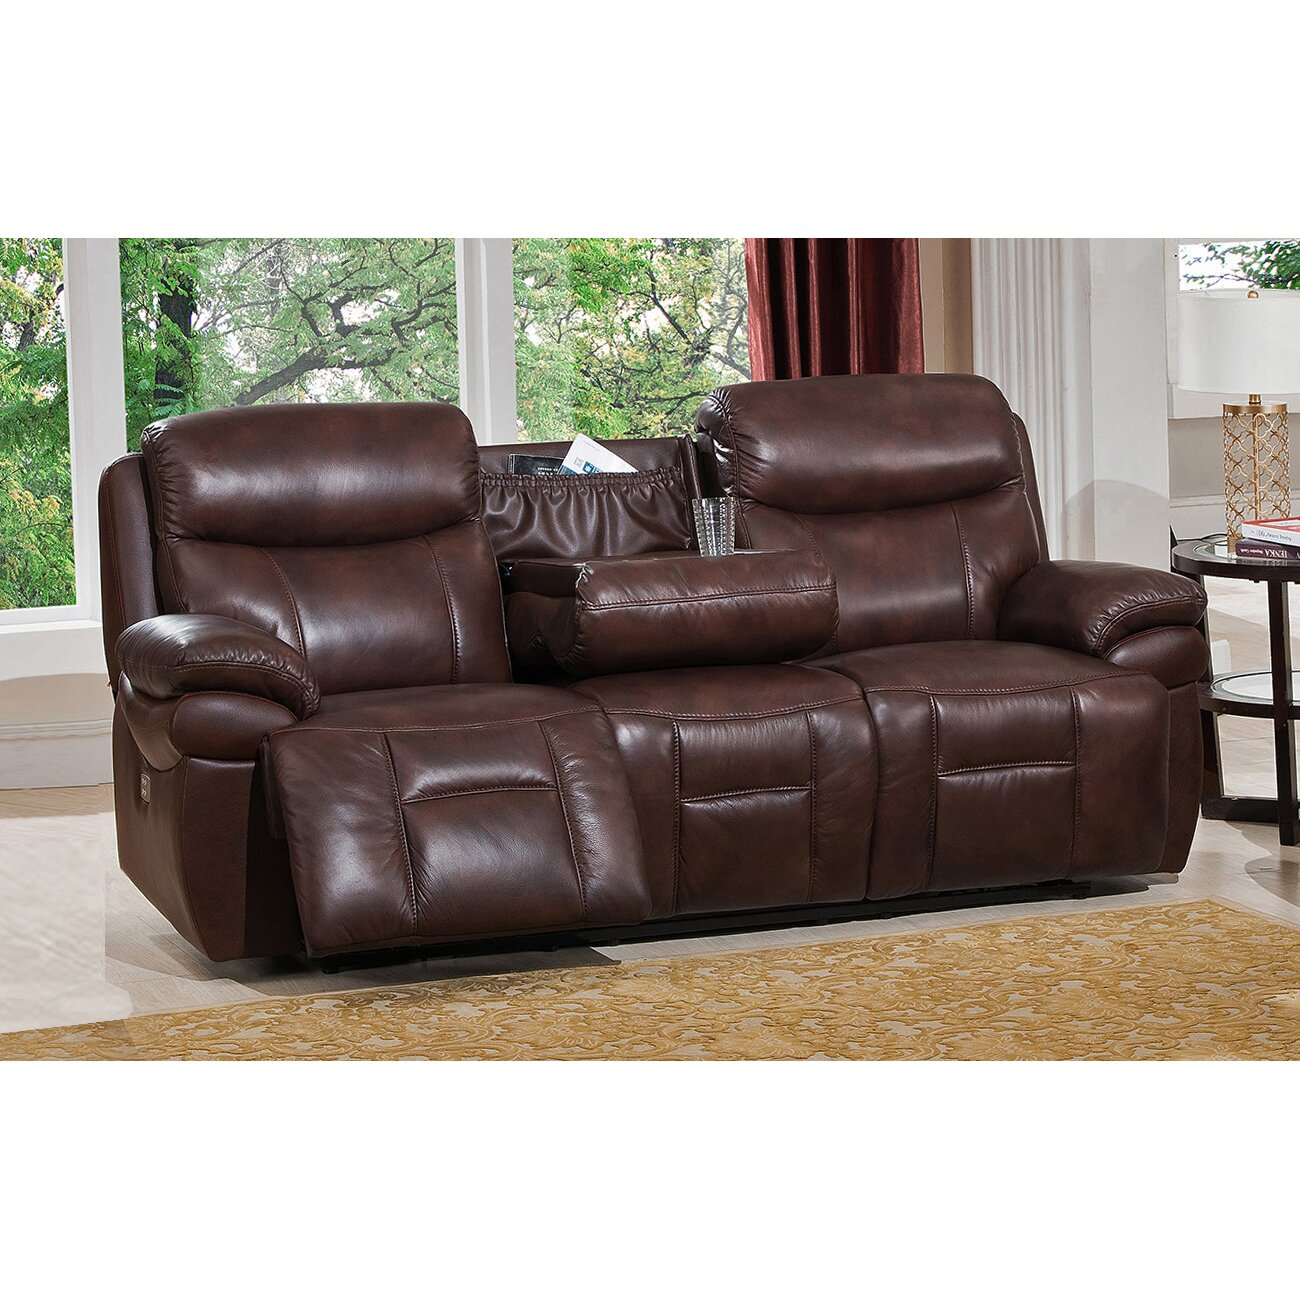 Amax sanford 2 piece leather power reclining living room set with power headrests and drop down for Living room with two recliners